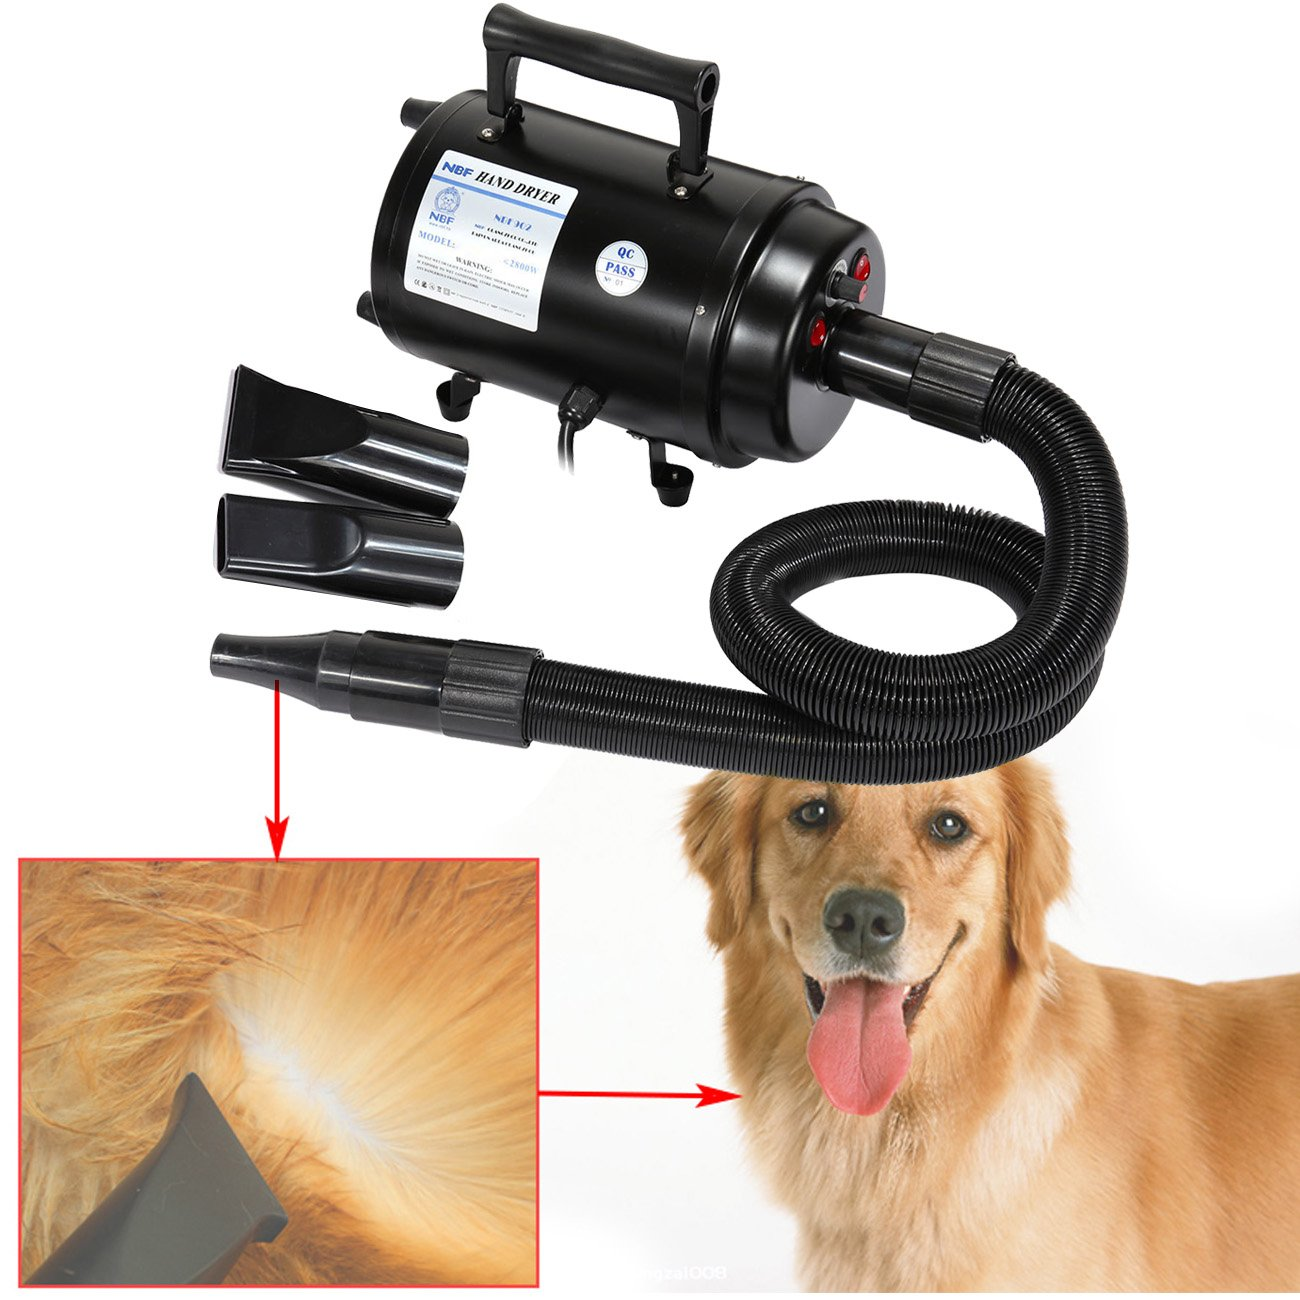 Ridgeyard Portable 2800w Dog Cat Hair Blow Dryer Pet Grooming Home Bathing Draw Hairdryer w/Heater for Cats Dogs High Speeds Adjustable Heat